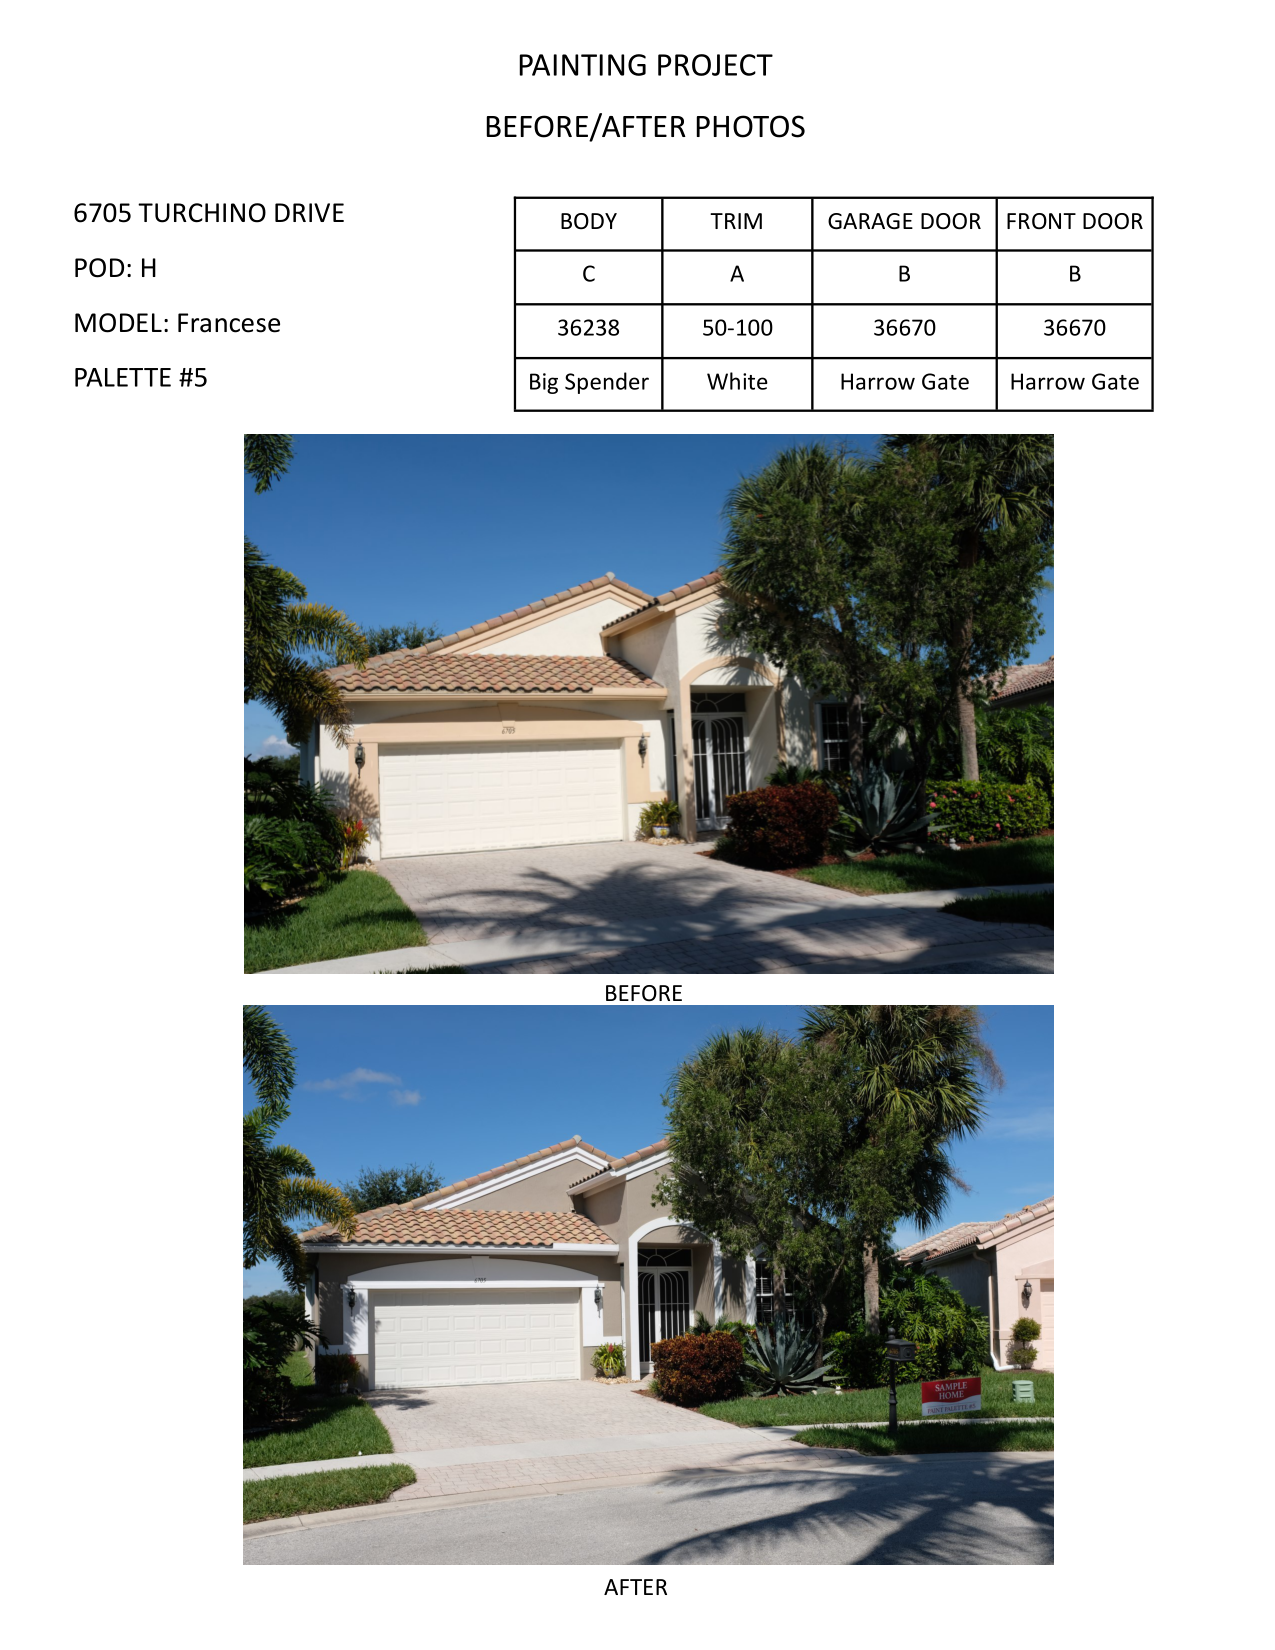 b4aftersample homes pictures-6.png